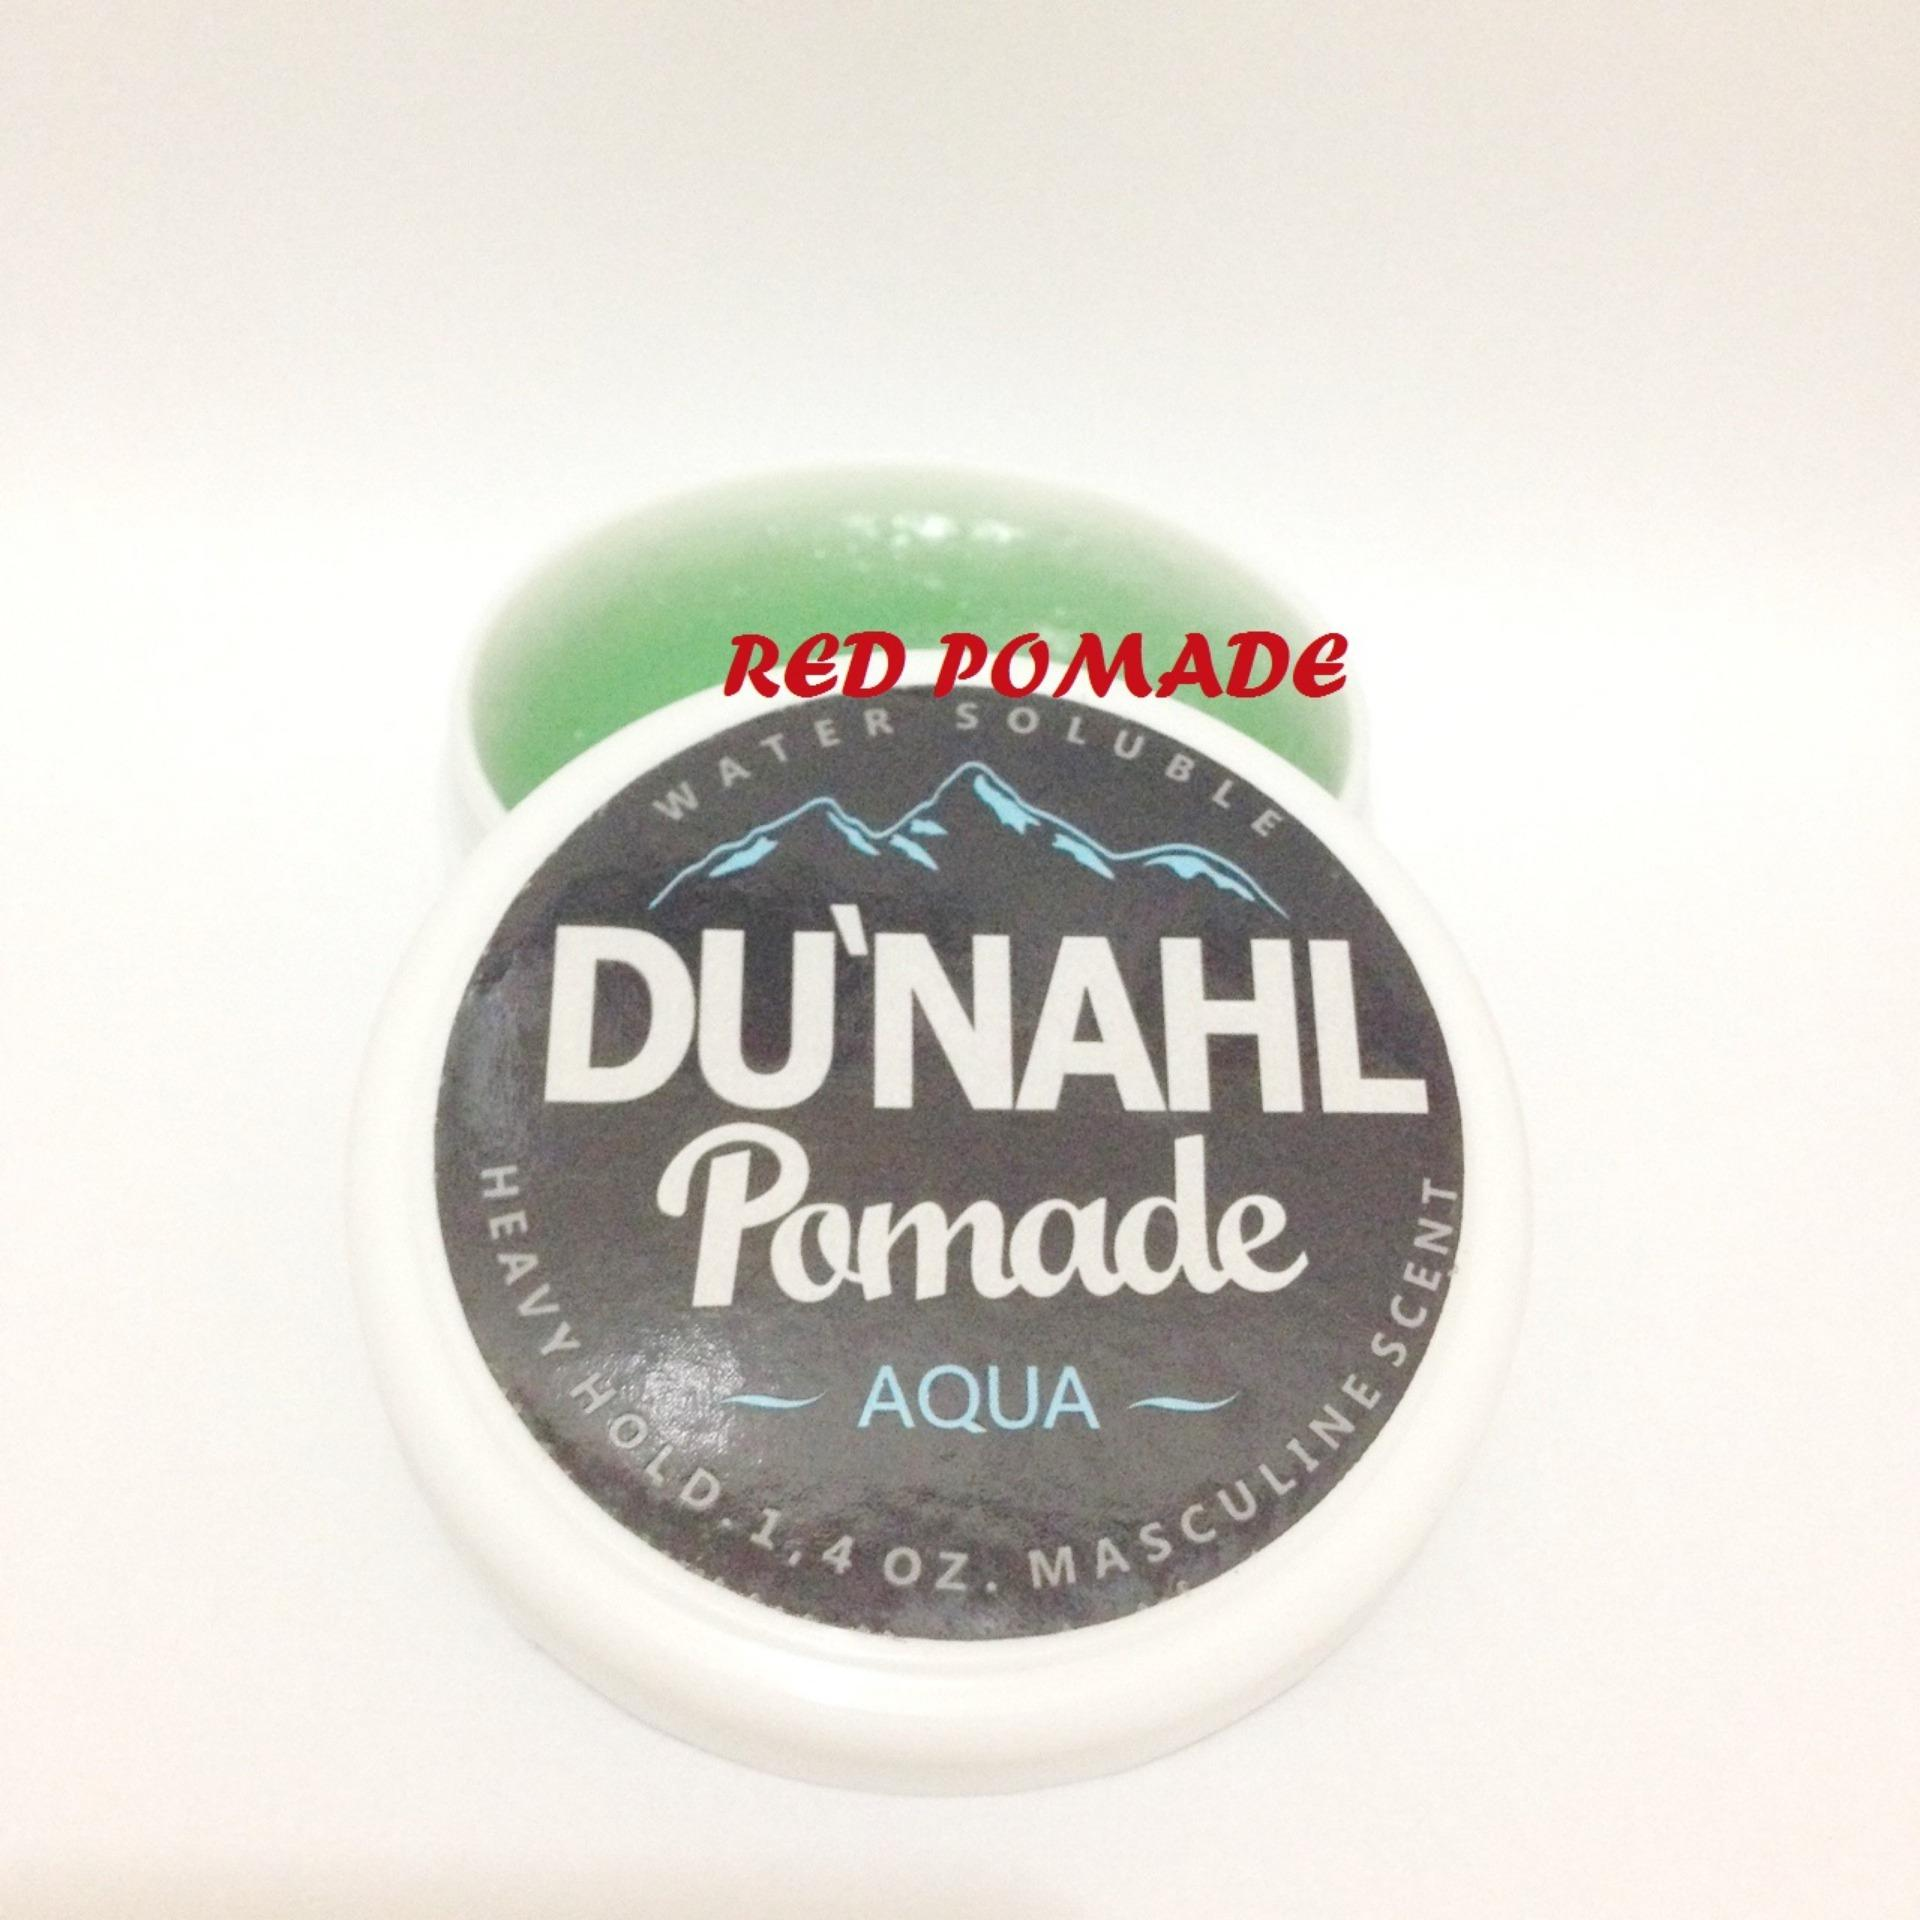 ULASAN POMADE DUNAHL DU'NAHL MINI AQUA 1.4 OZ HEAVY HOLD WATERBASED WATER BASED TRAVEL SIZE + FREE SISIR SAKU Terpopuler